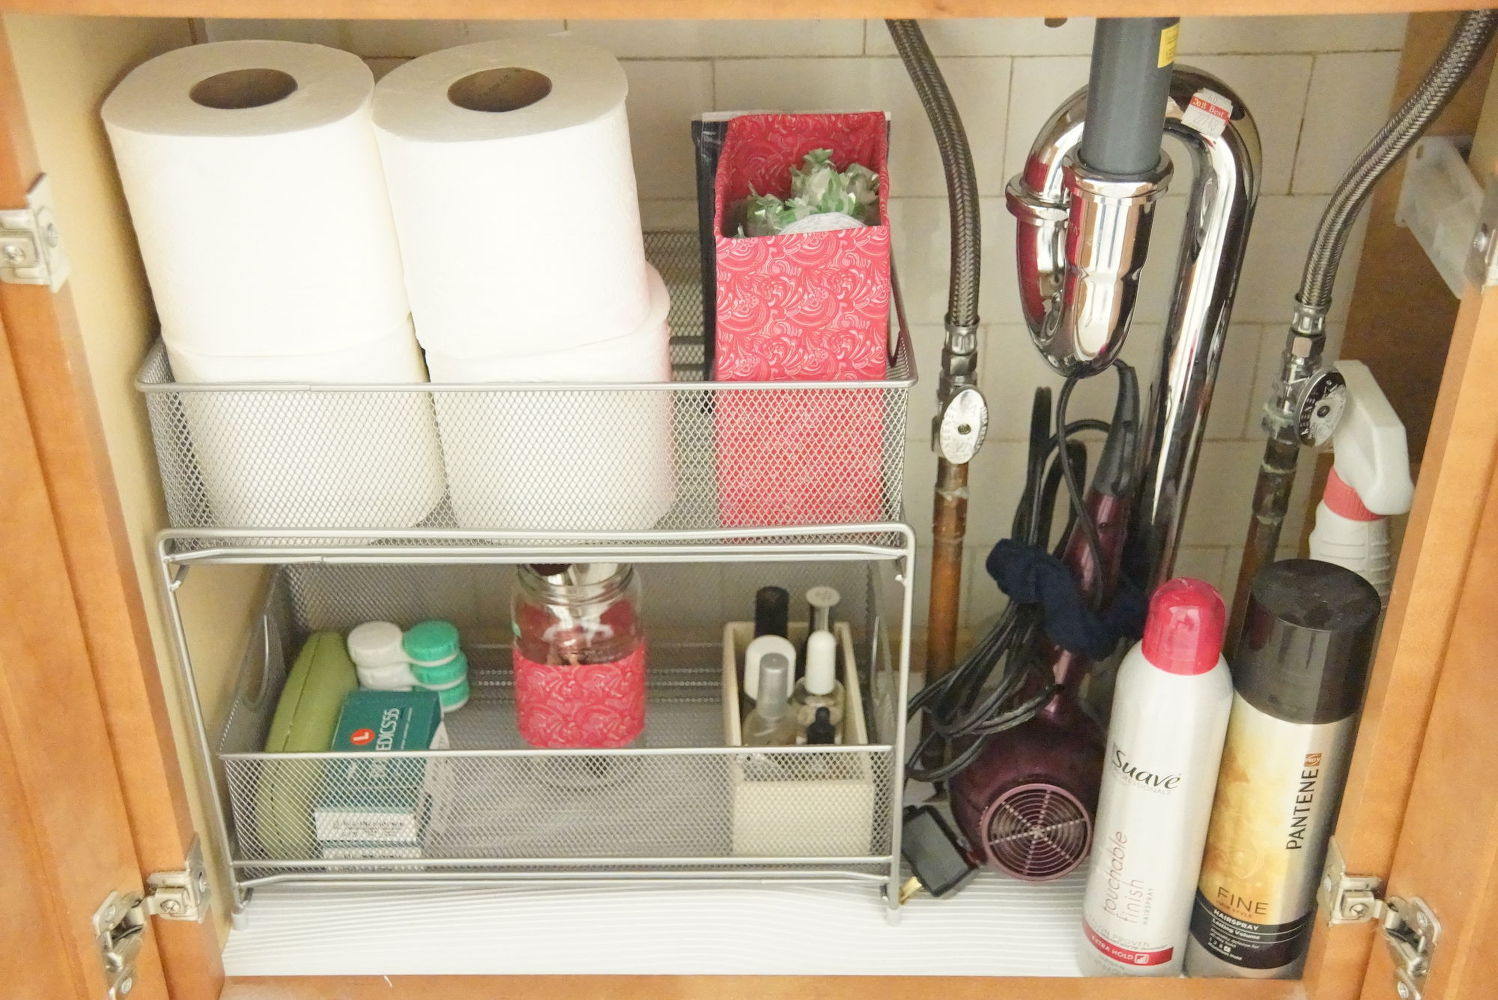 Best ideas about Bathroom Sink Organizer . Save or Pin The 15 Smartest Storage Hacks For Under Your Sink Now.